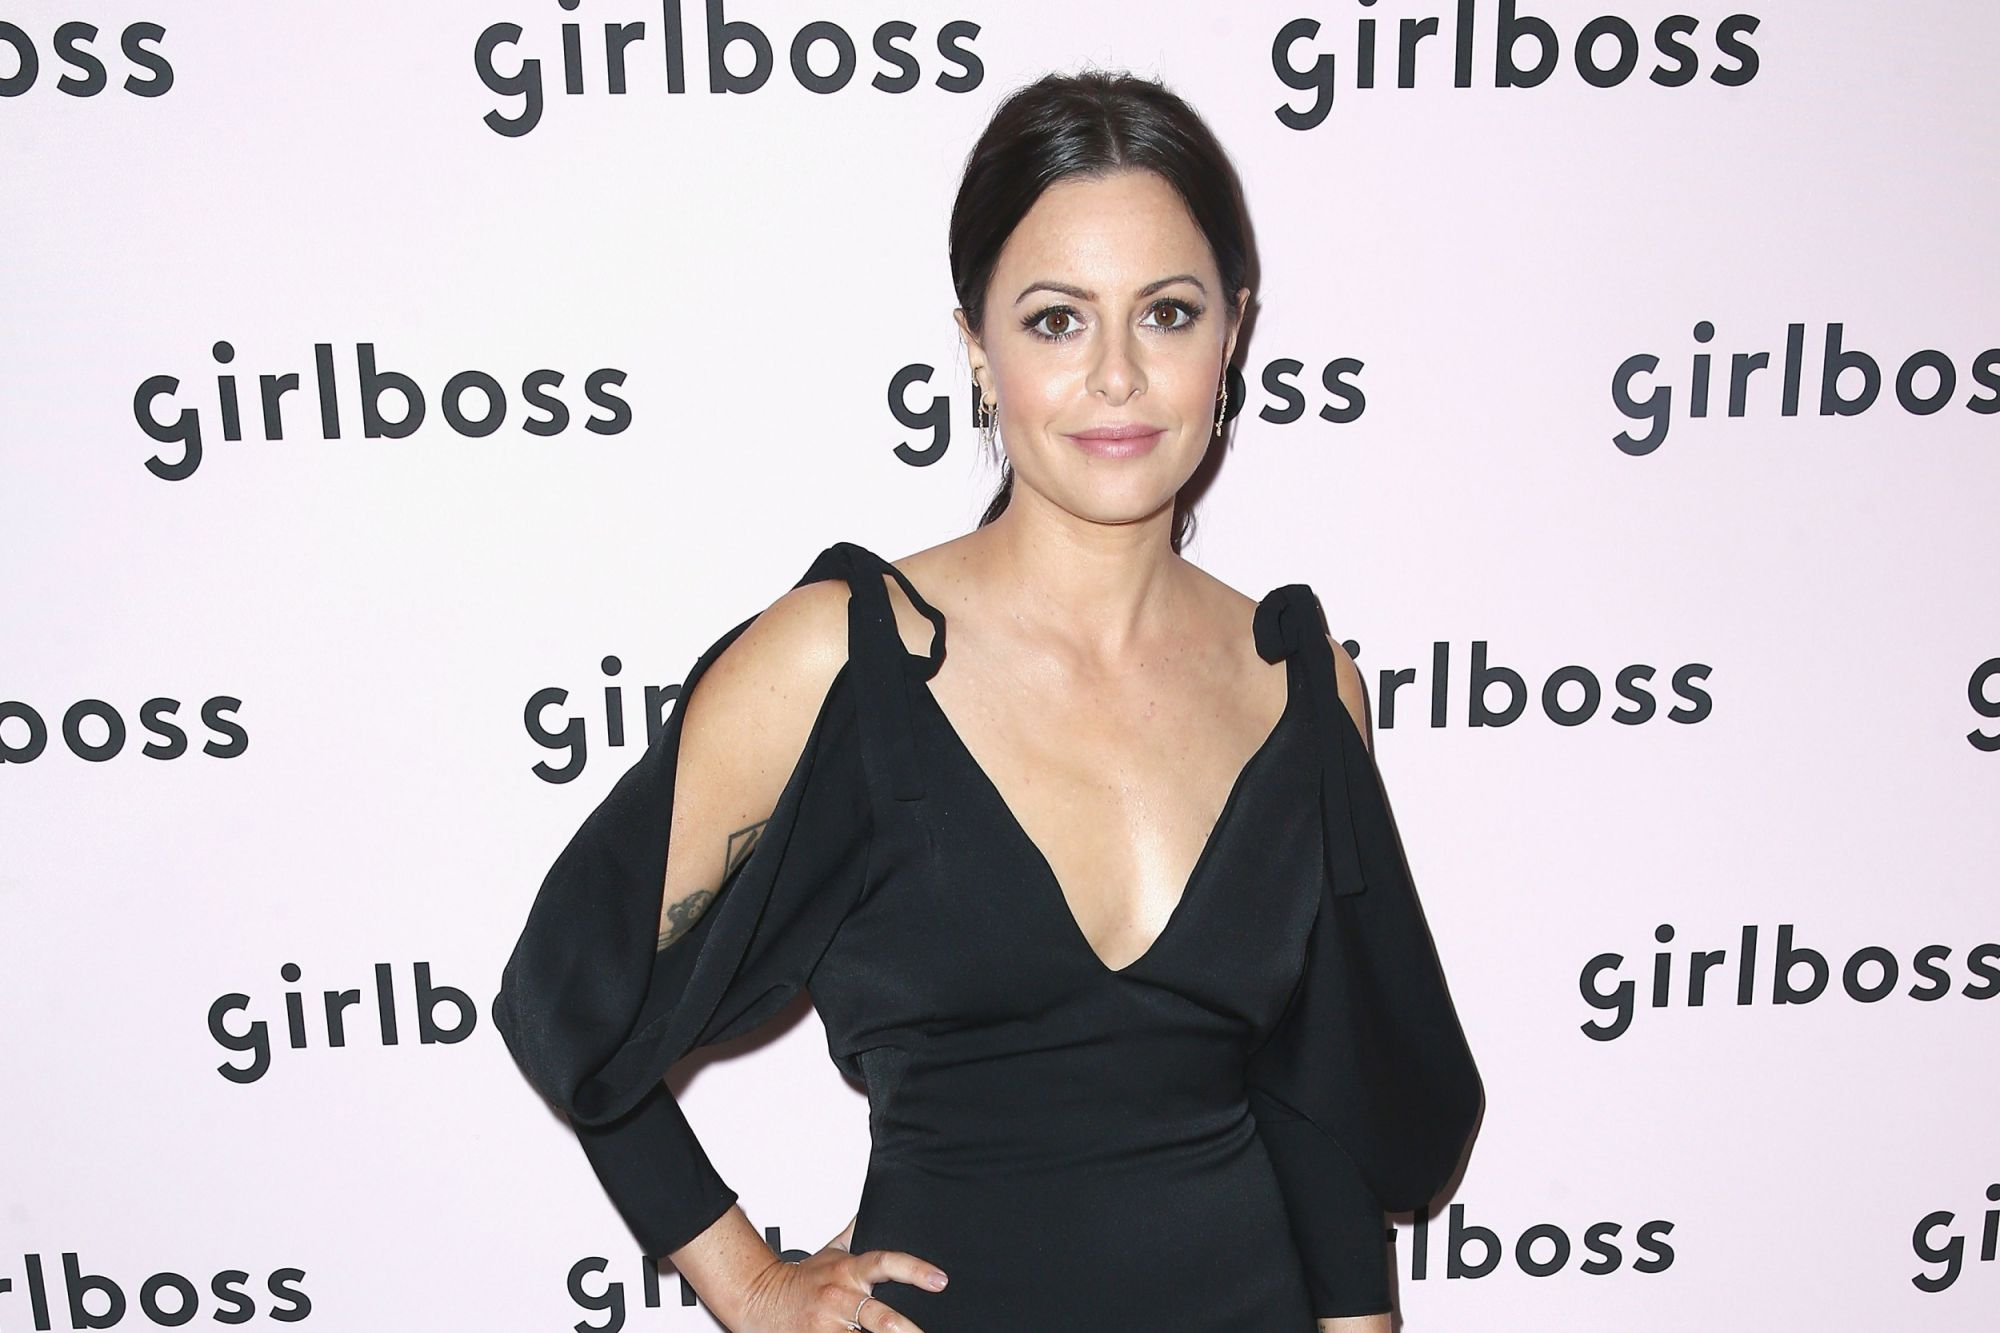 Girlboss to Take on LinkedIn With Its Own Social Network